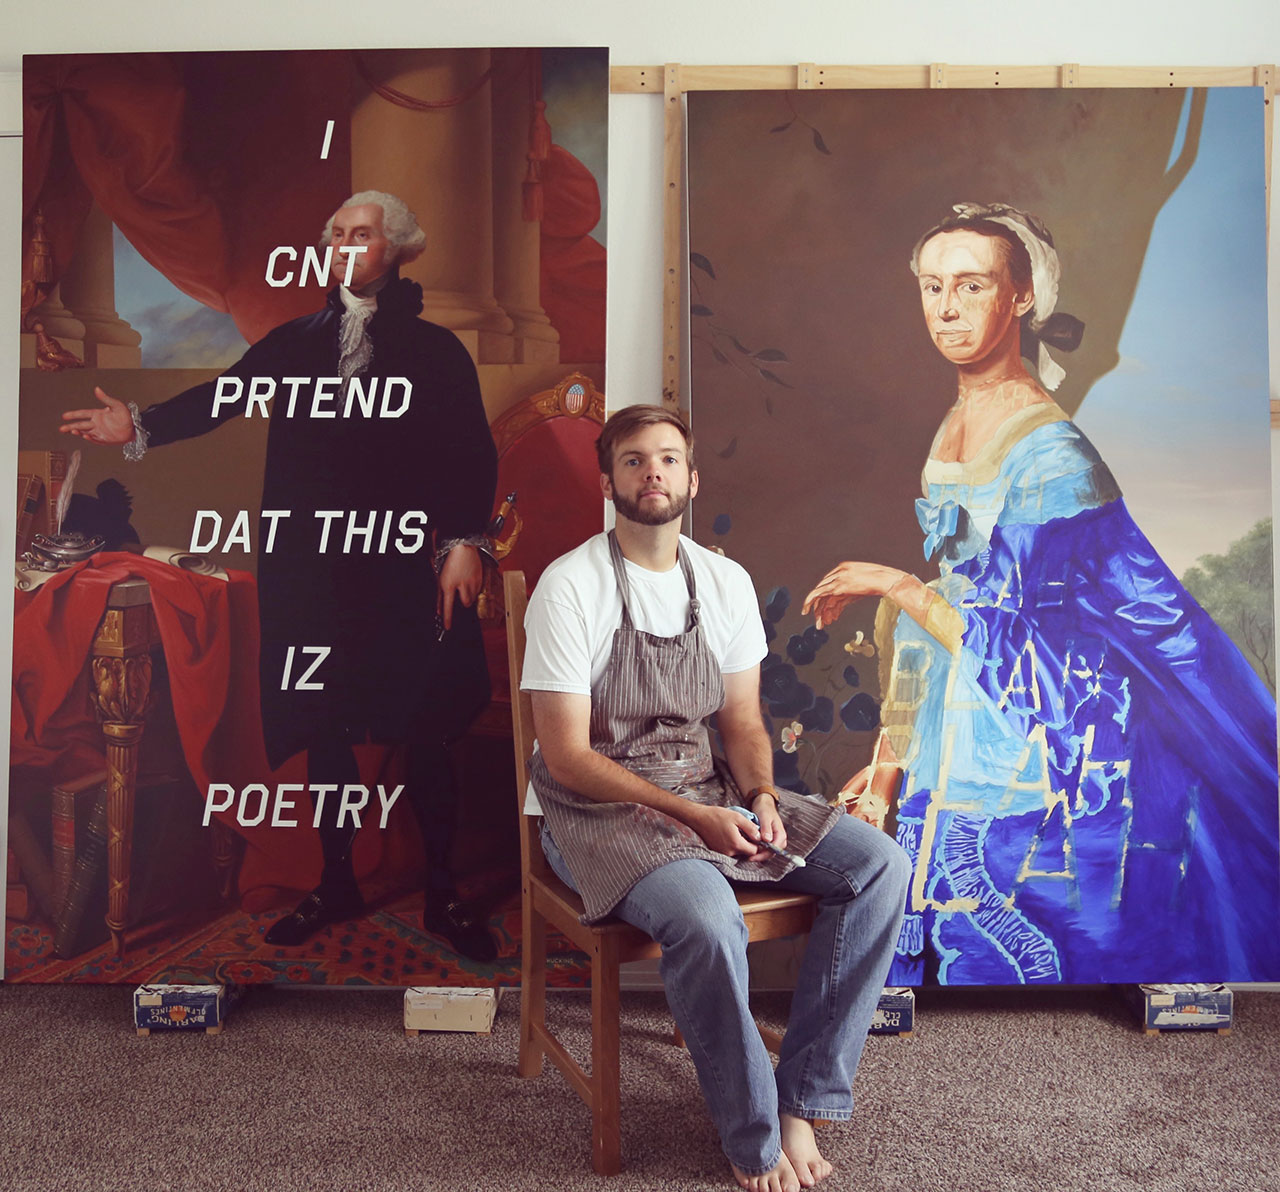 Shawn Huckins studio. Photo © Shawn Huckins.